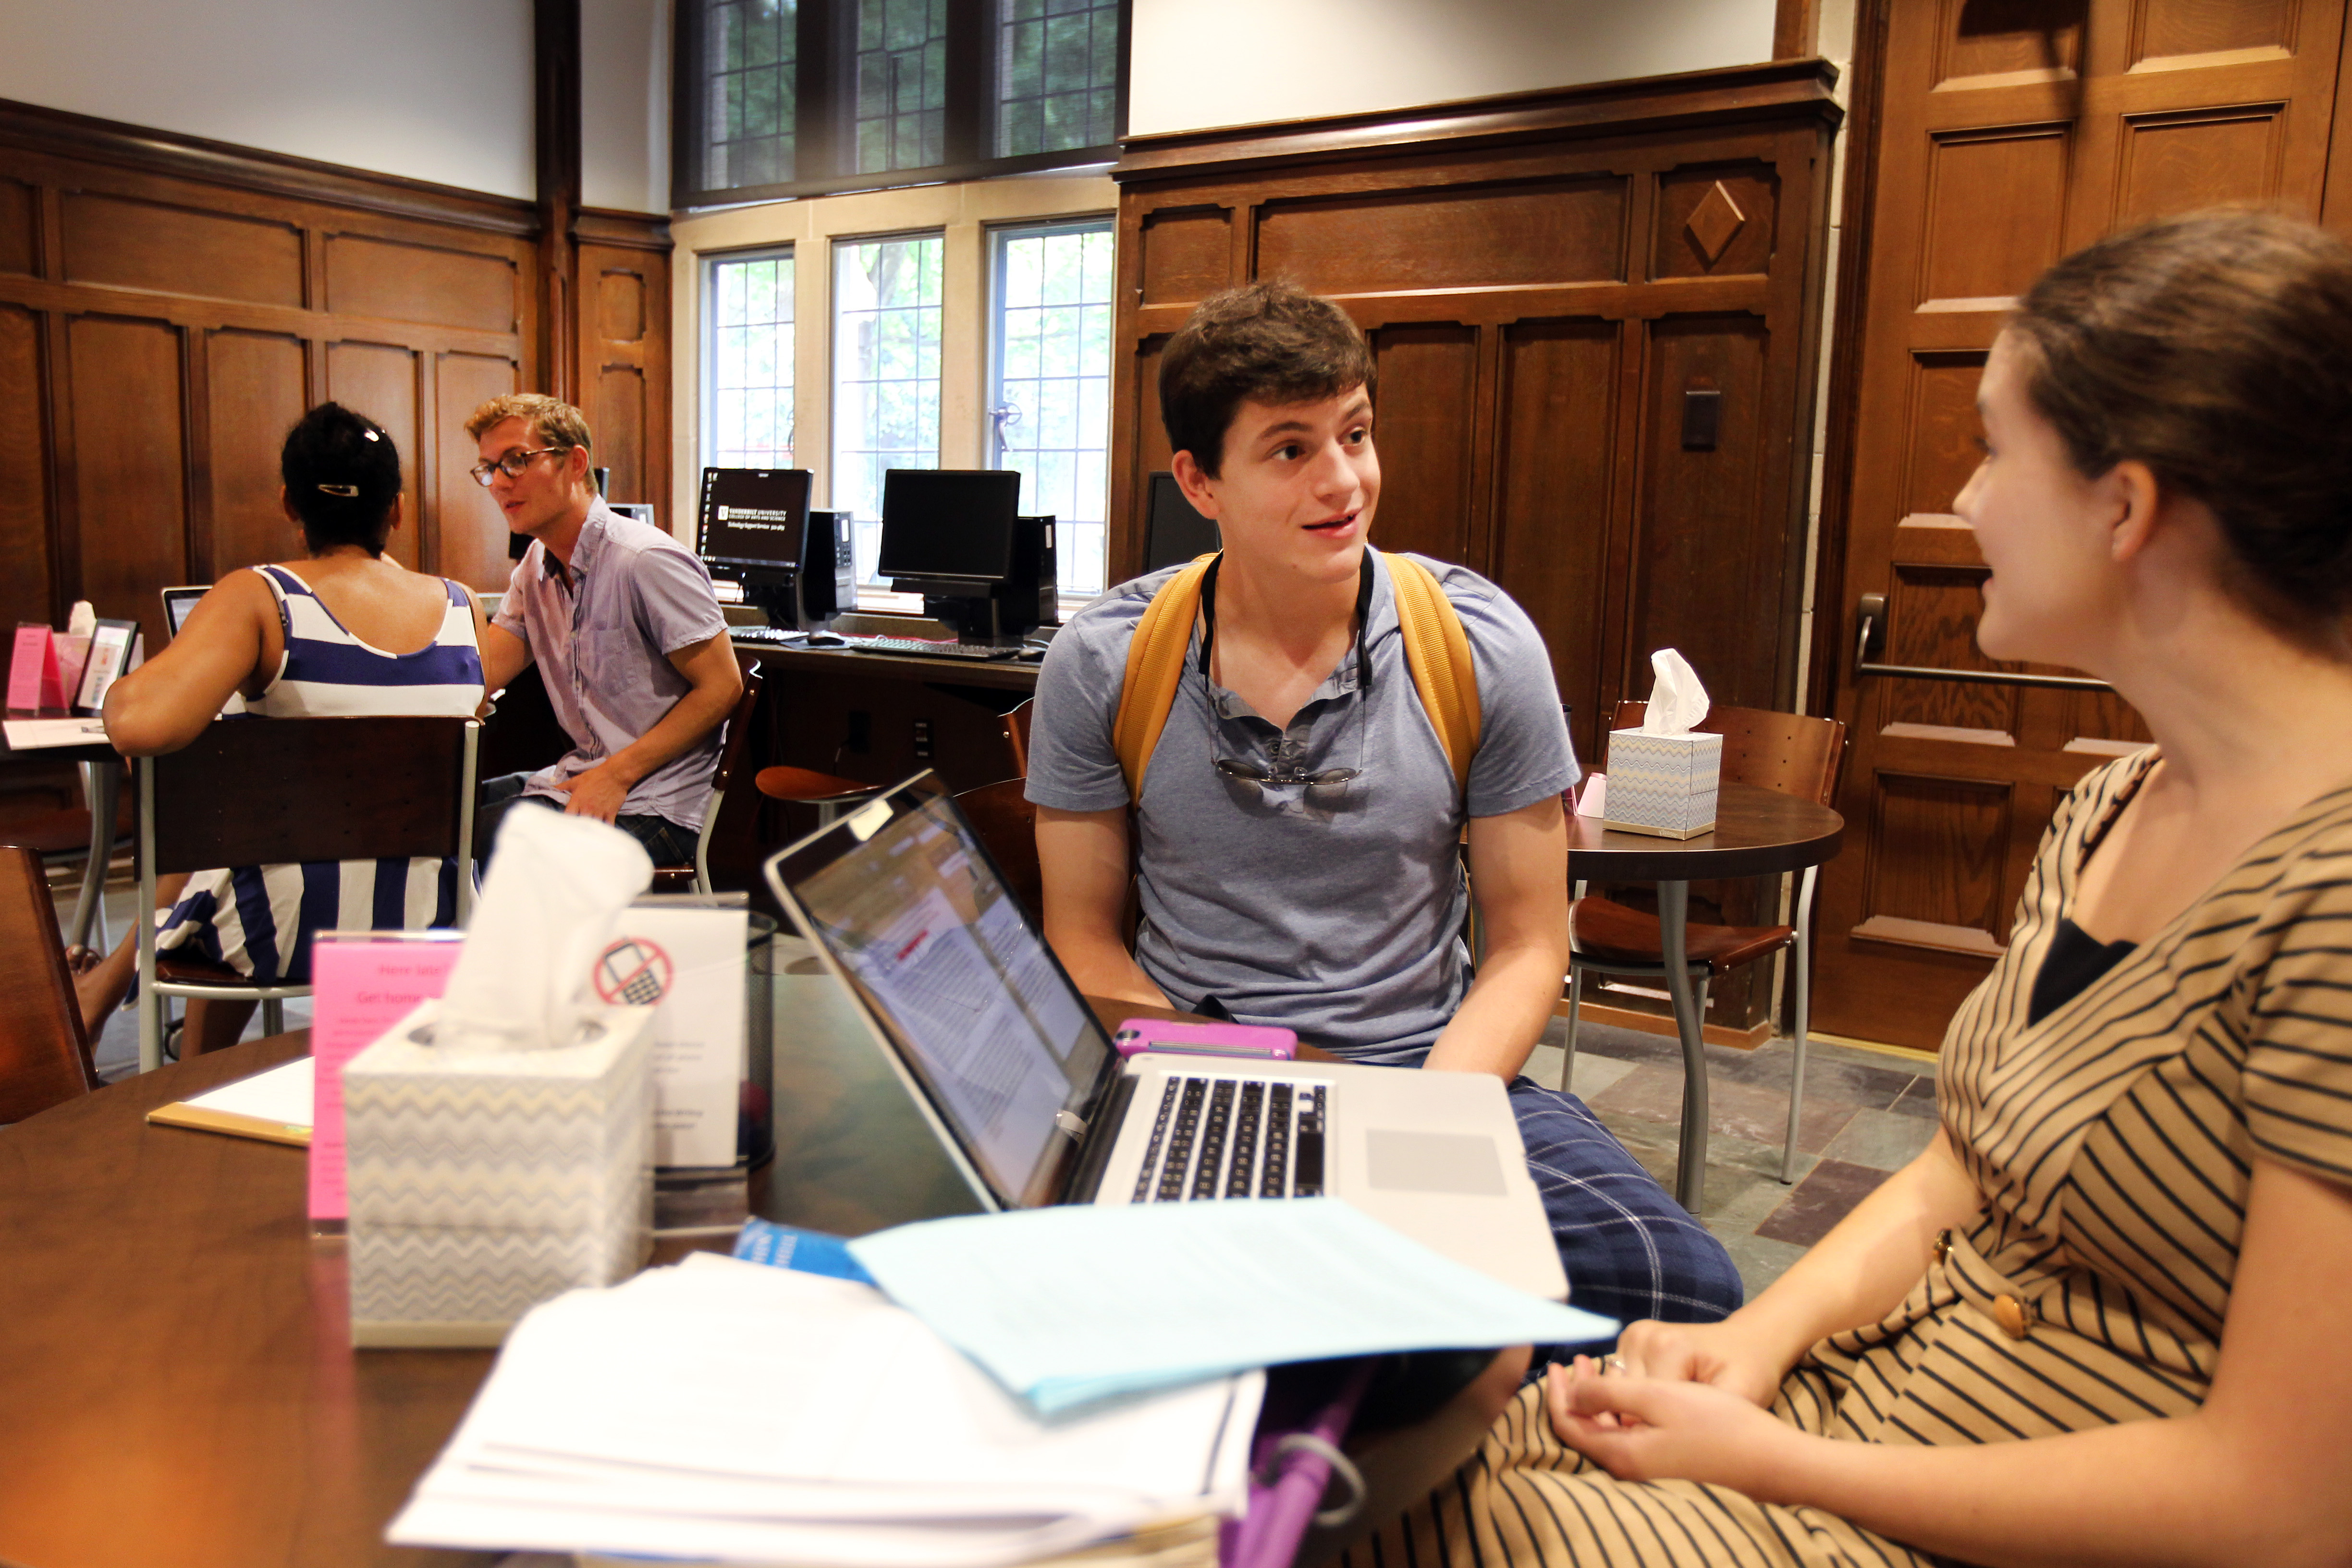 vanderbilt essay requirements Comprehensive information on admission at vanderbilt university, including admission requirements and deadlines, early and regular admission rates, gpas and test.